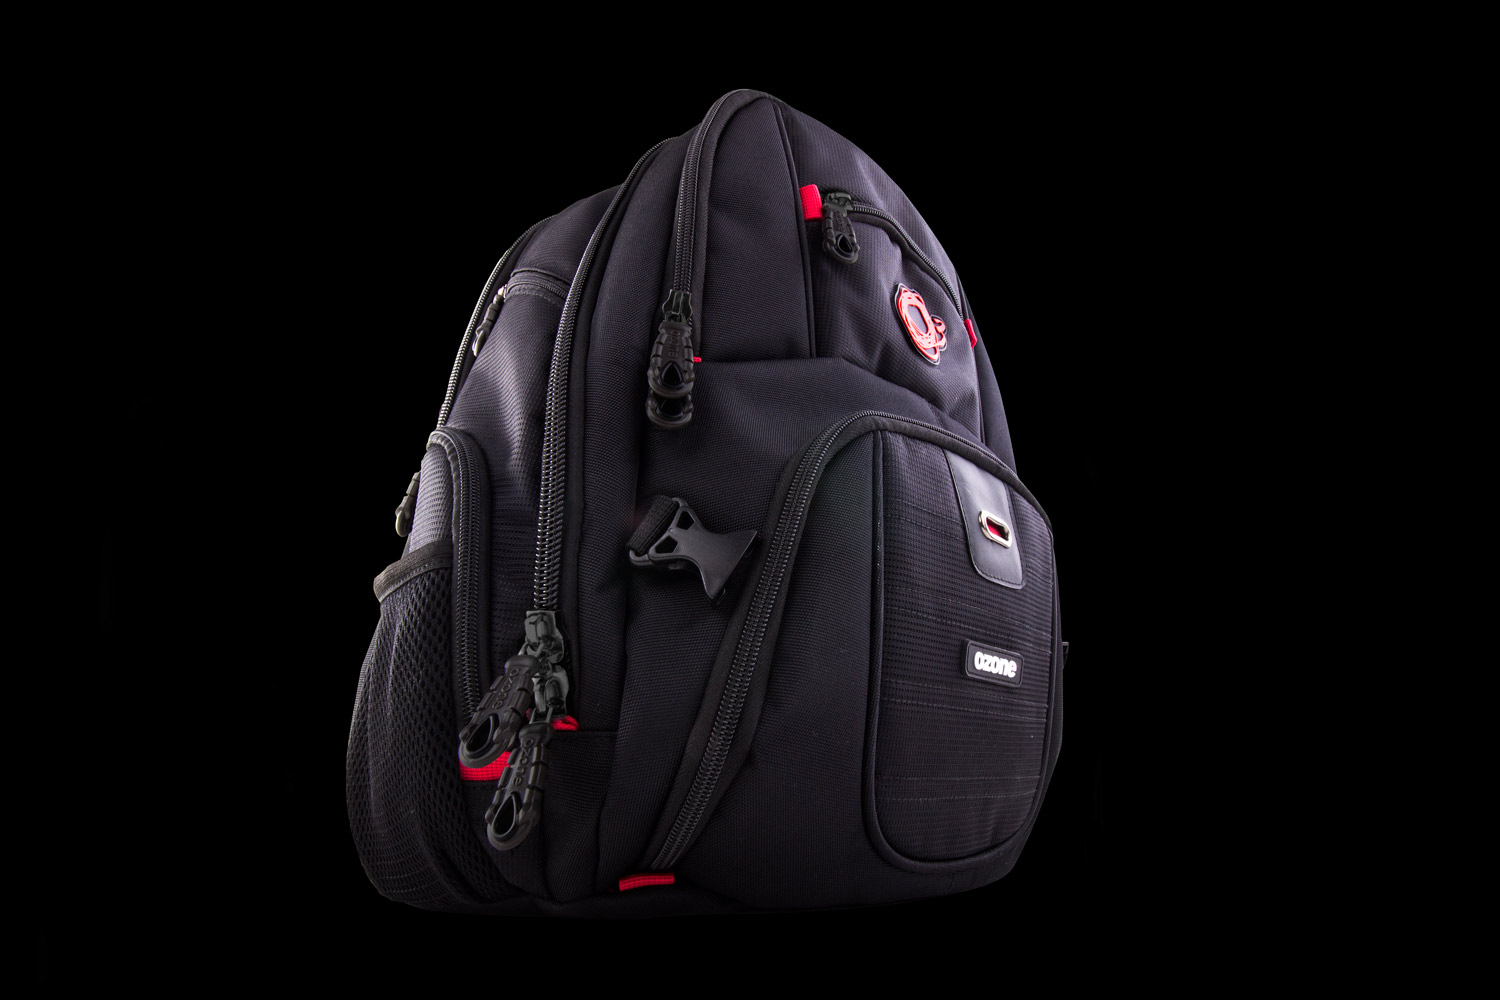 survivor - Pro Gaming Backpack - Accesories - 1